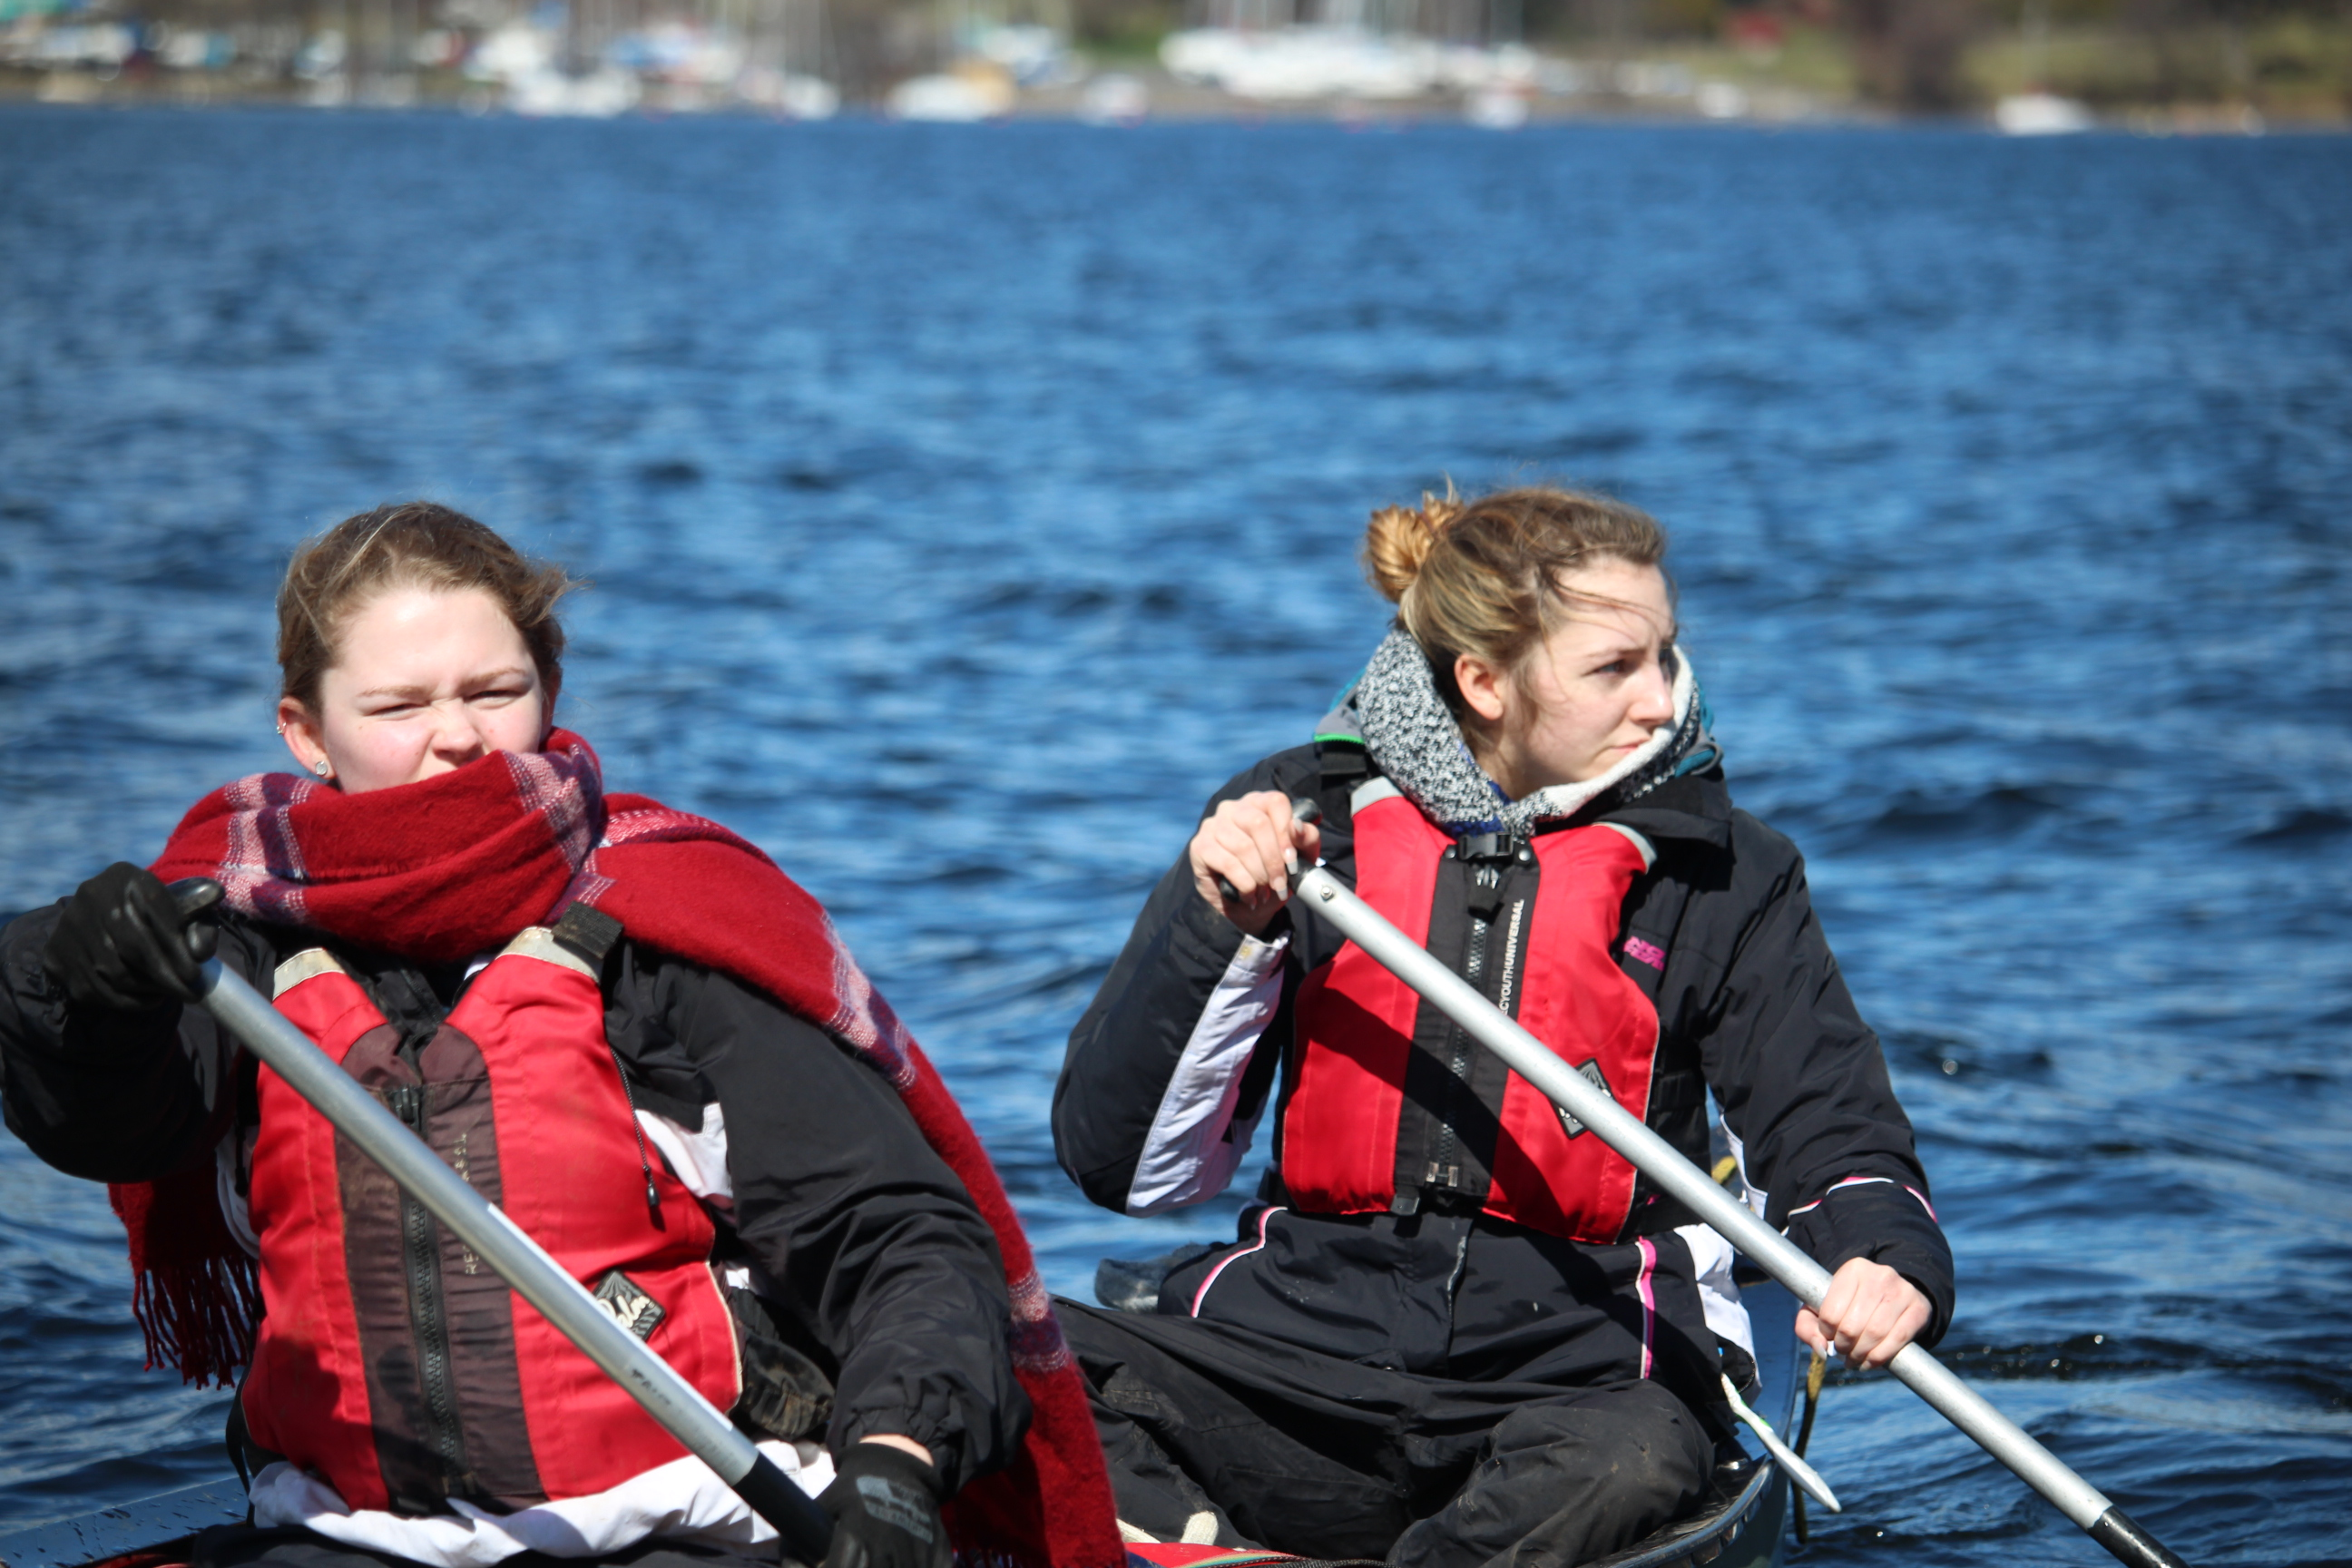 Canoeing One Day Taster Start and Discover